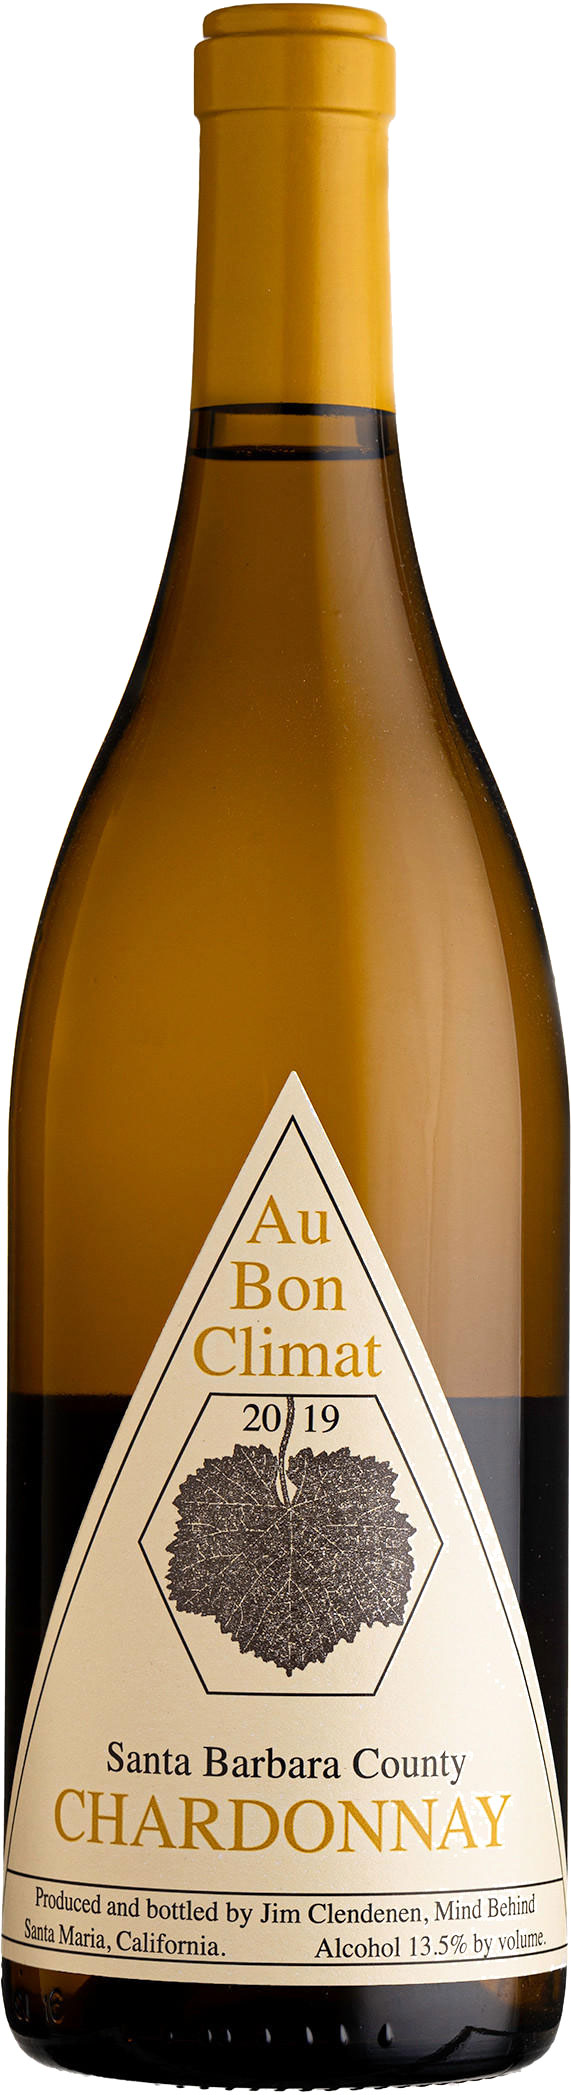 Au Bon Climat - Chardonnay 2017 75cl Bottle